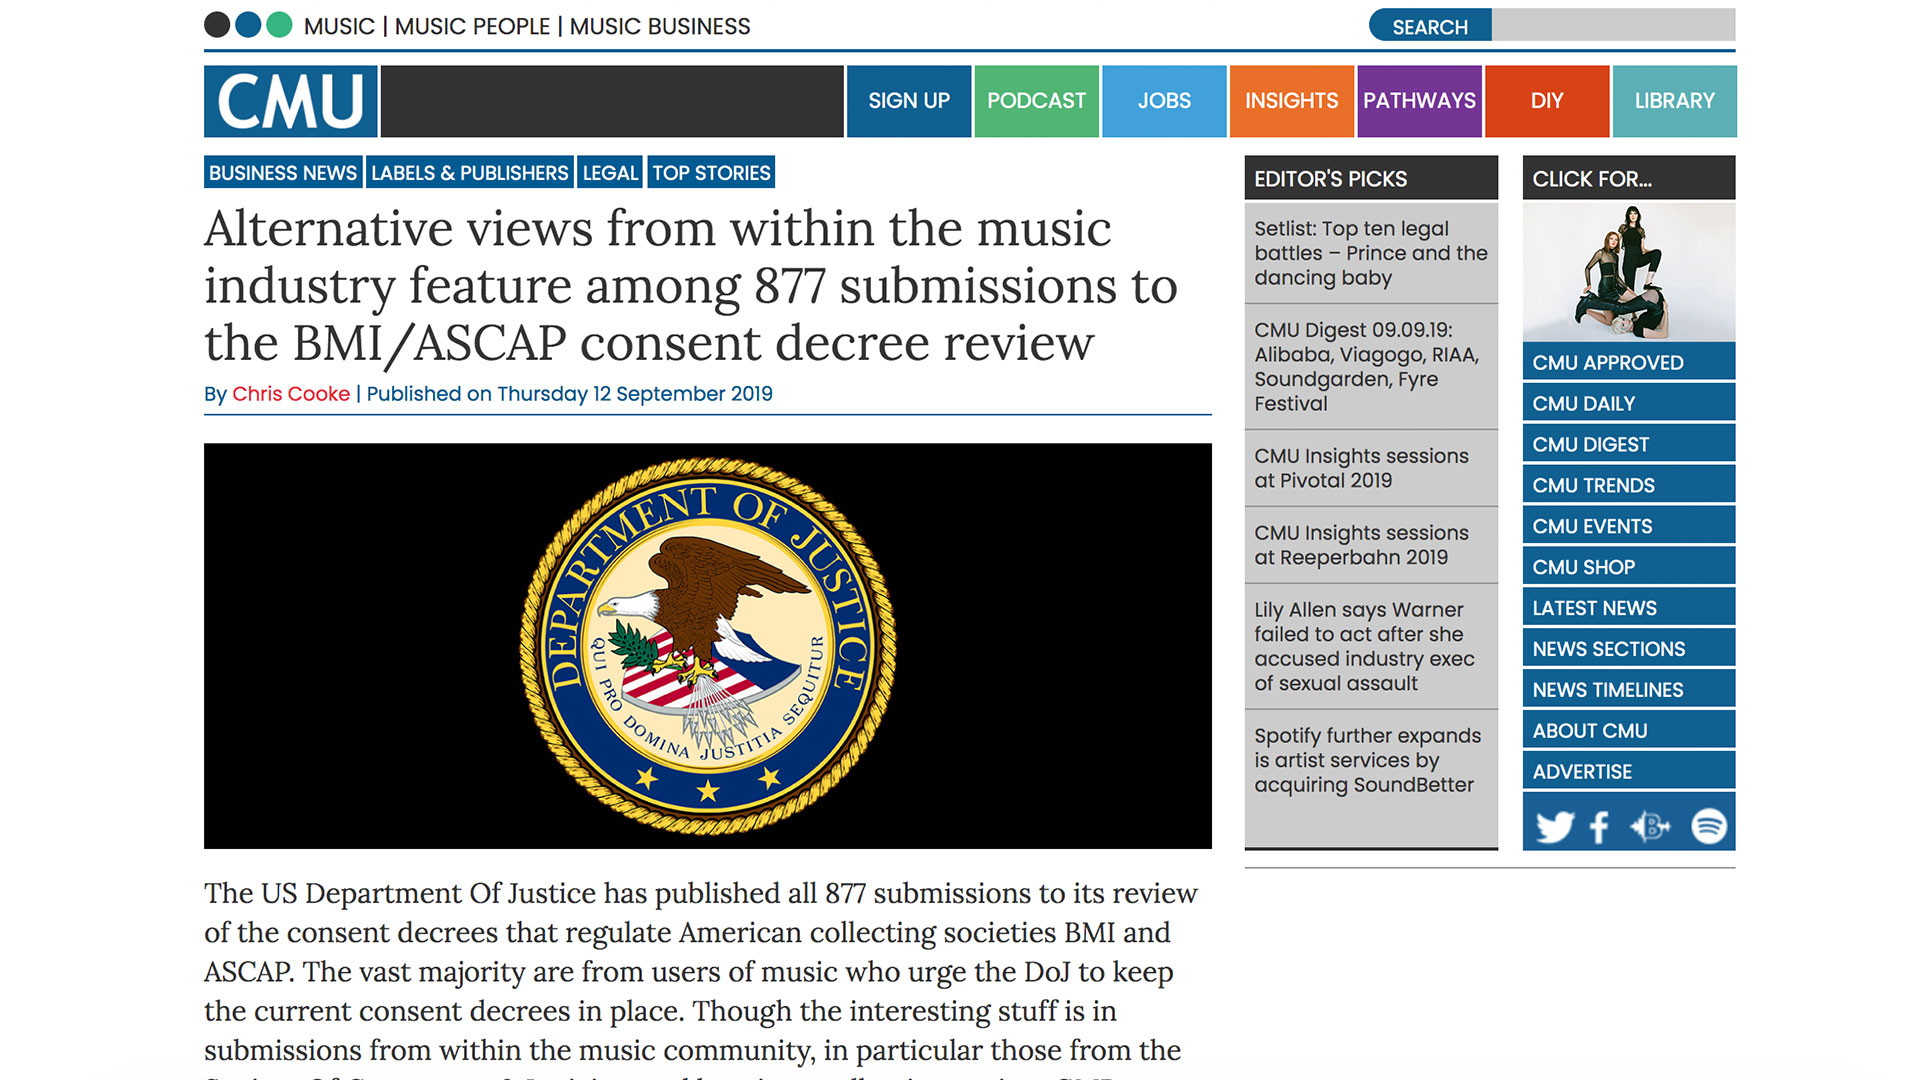 Fairness Rocks News Alternative views from within the music industry feature among 877 submissions to the BMI/ASCAP consent decree review